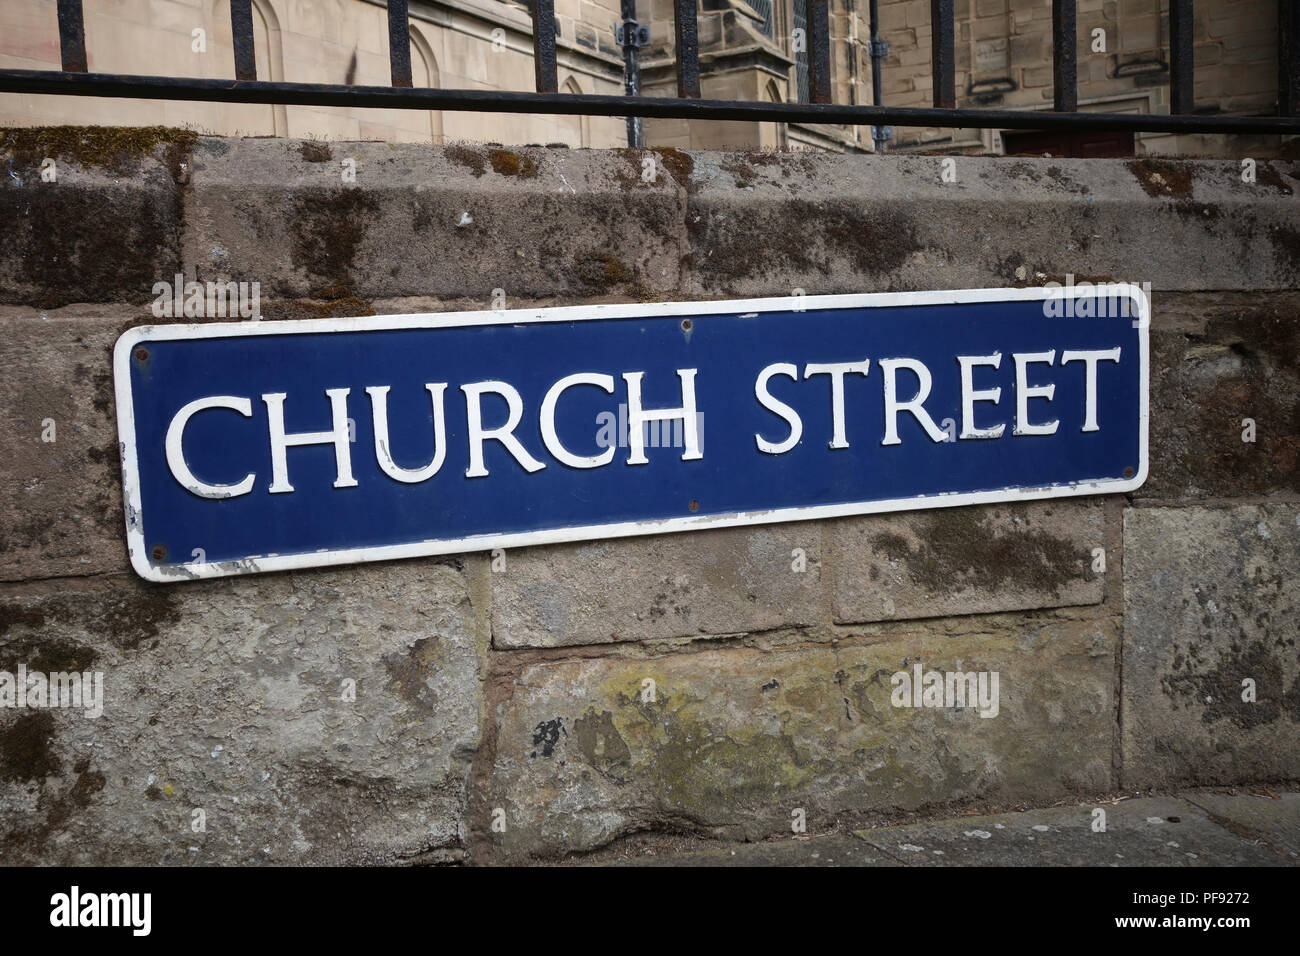 Church street road name sign in the busy market town of Warwick, Warwickshire - Stock Image